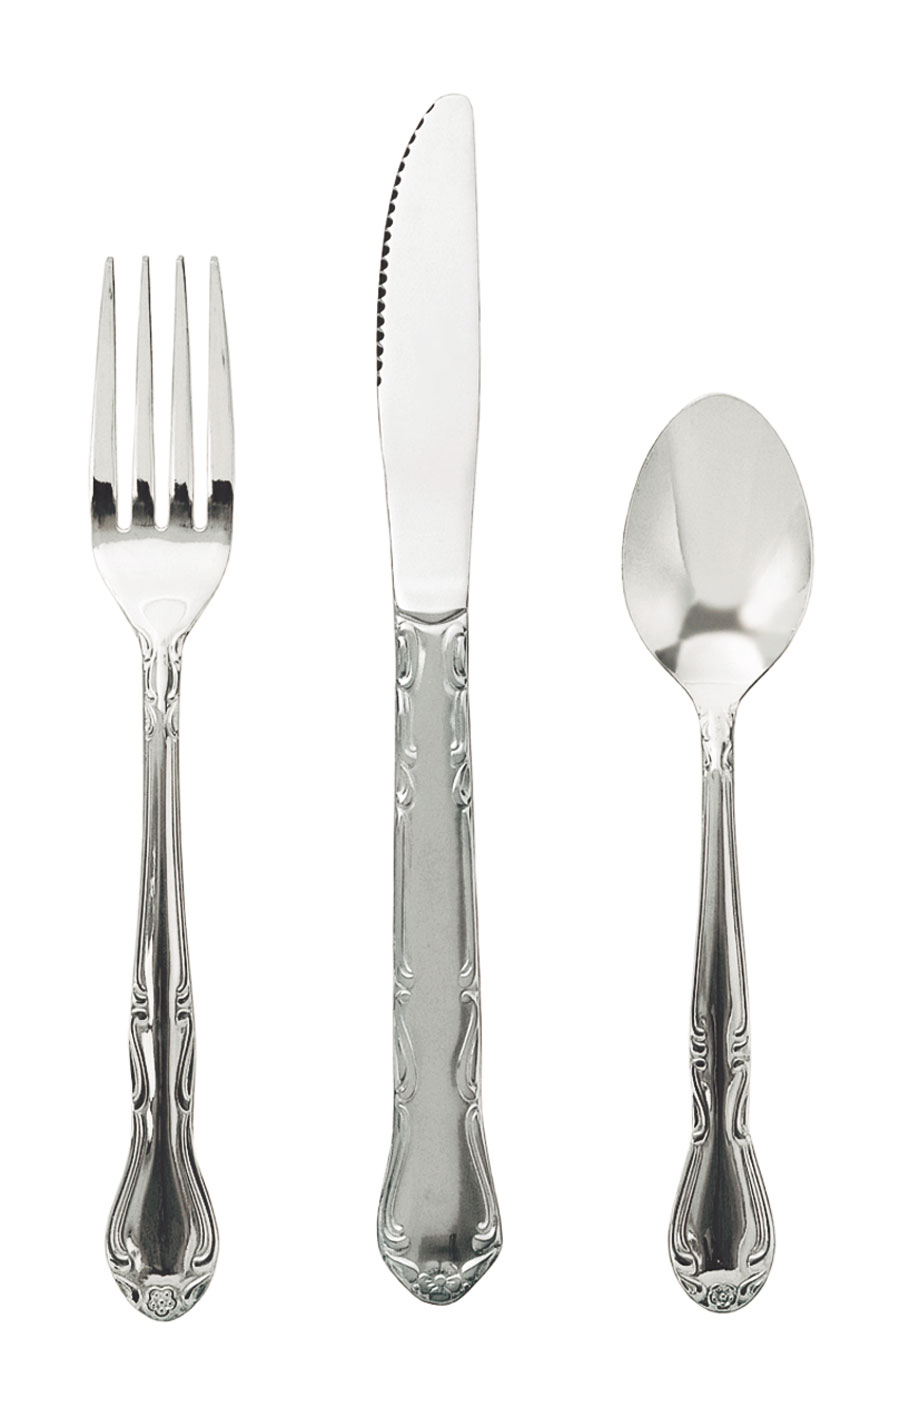 Update International CE-209 Bright Polish Claridge Serving Spoon - 1 doz